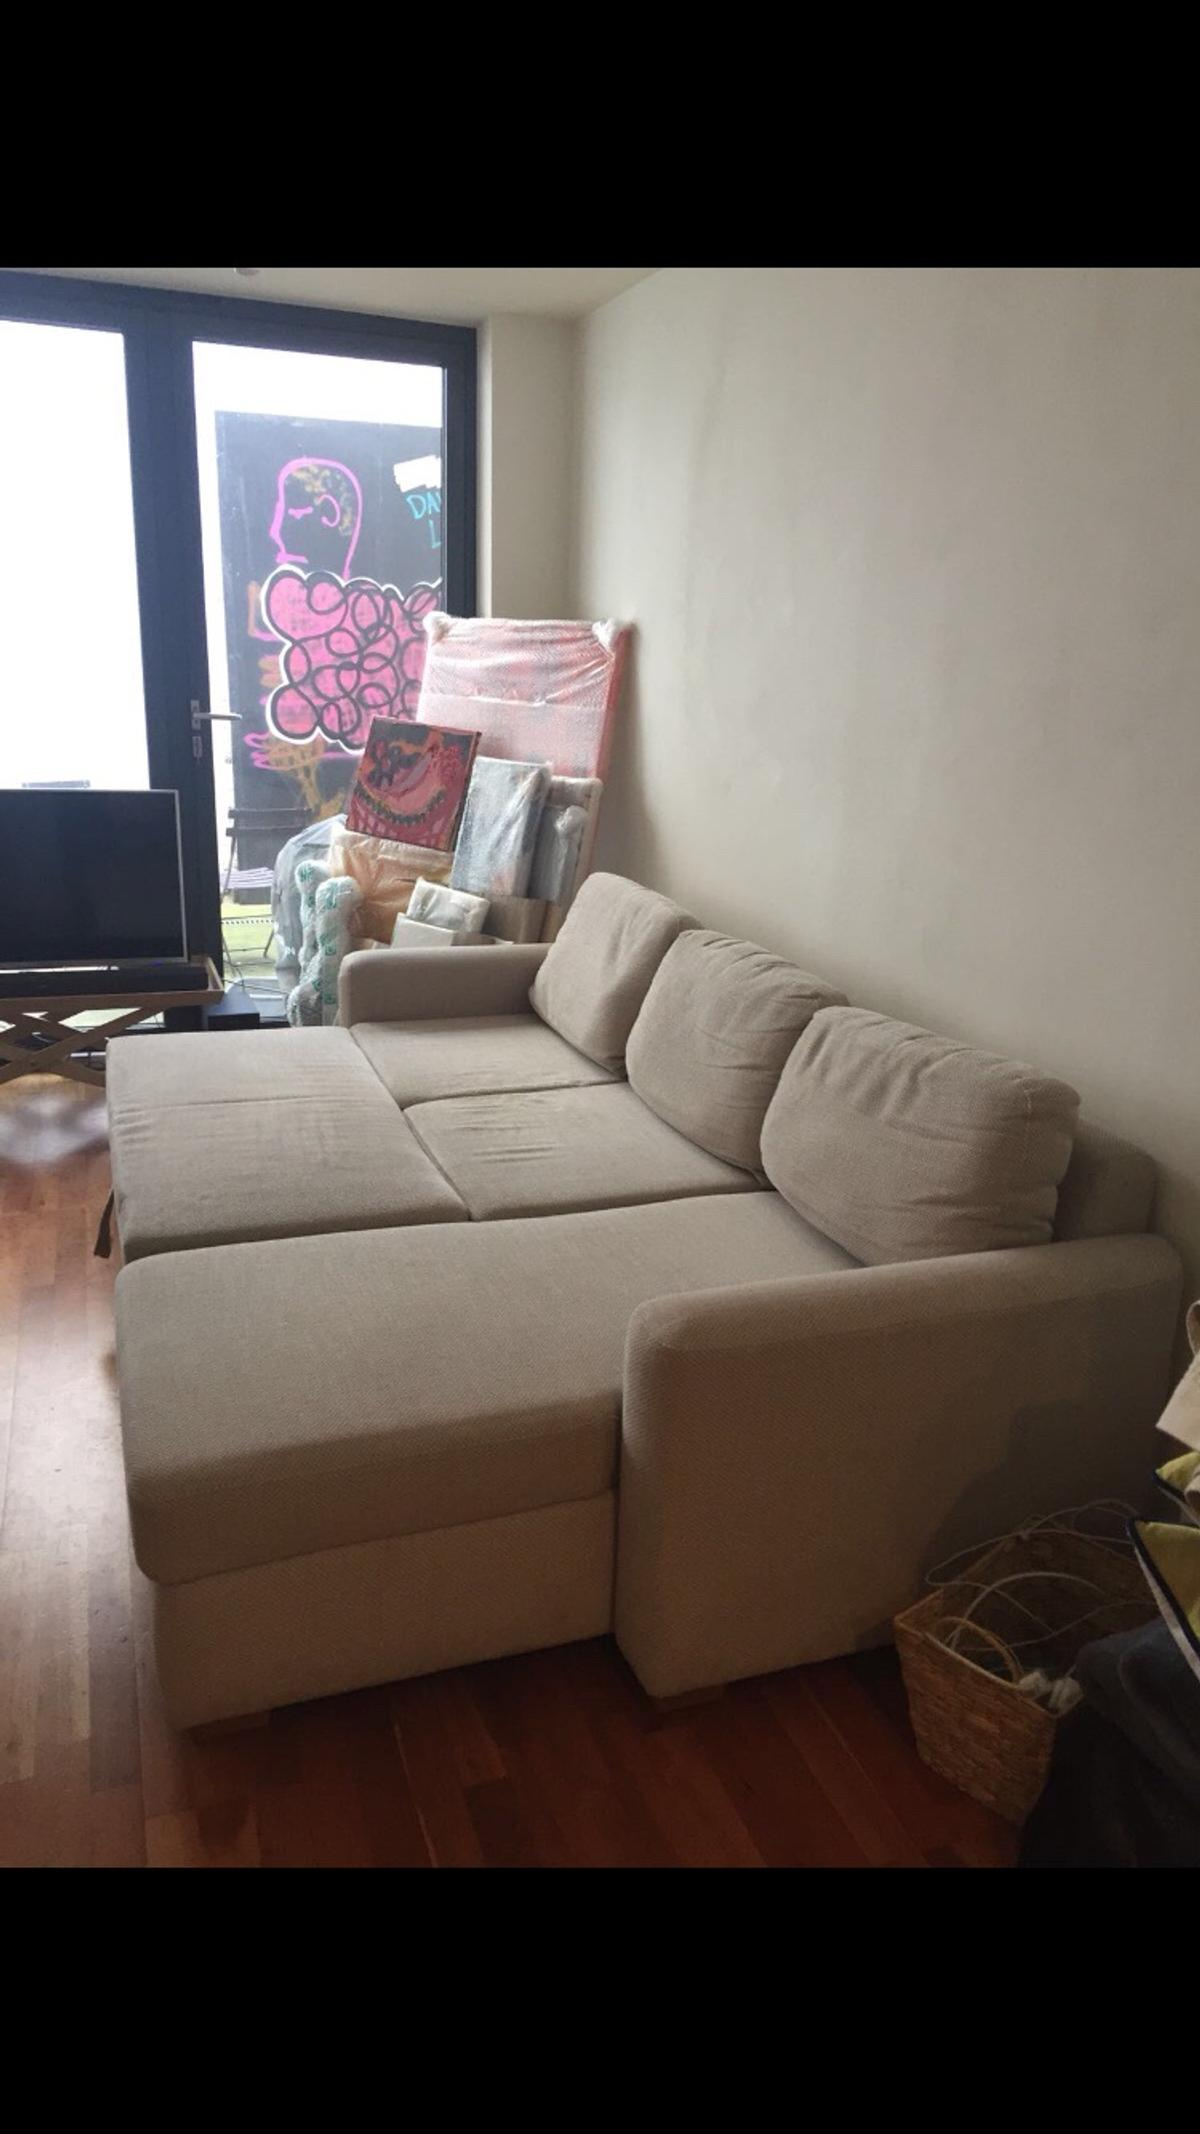 Prime John Lewis Sacha Large Sofa Bed In E1 London For 800 00 For Gmtry Best Dining Table And Chair Ideas Images Gmtryco